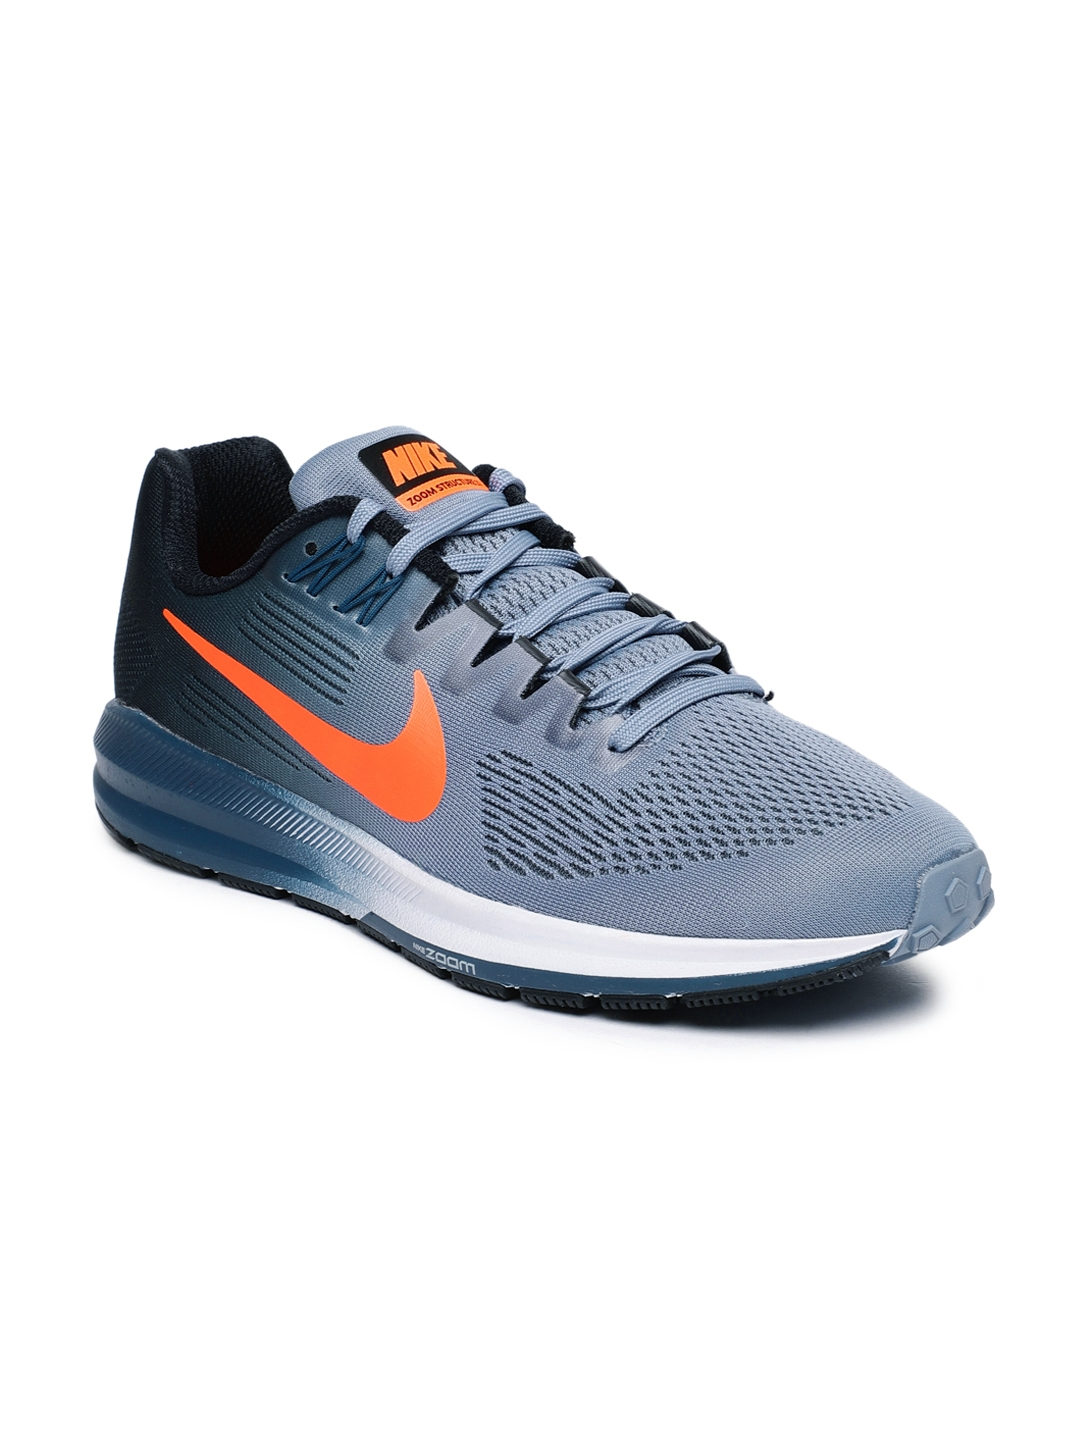 9d2167e0dfcc Buy Nike Men Blue   Black Air Zoom Structure 21 Running Shoes ...